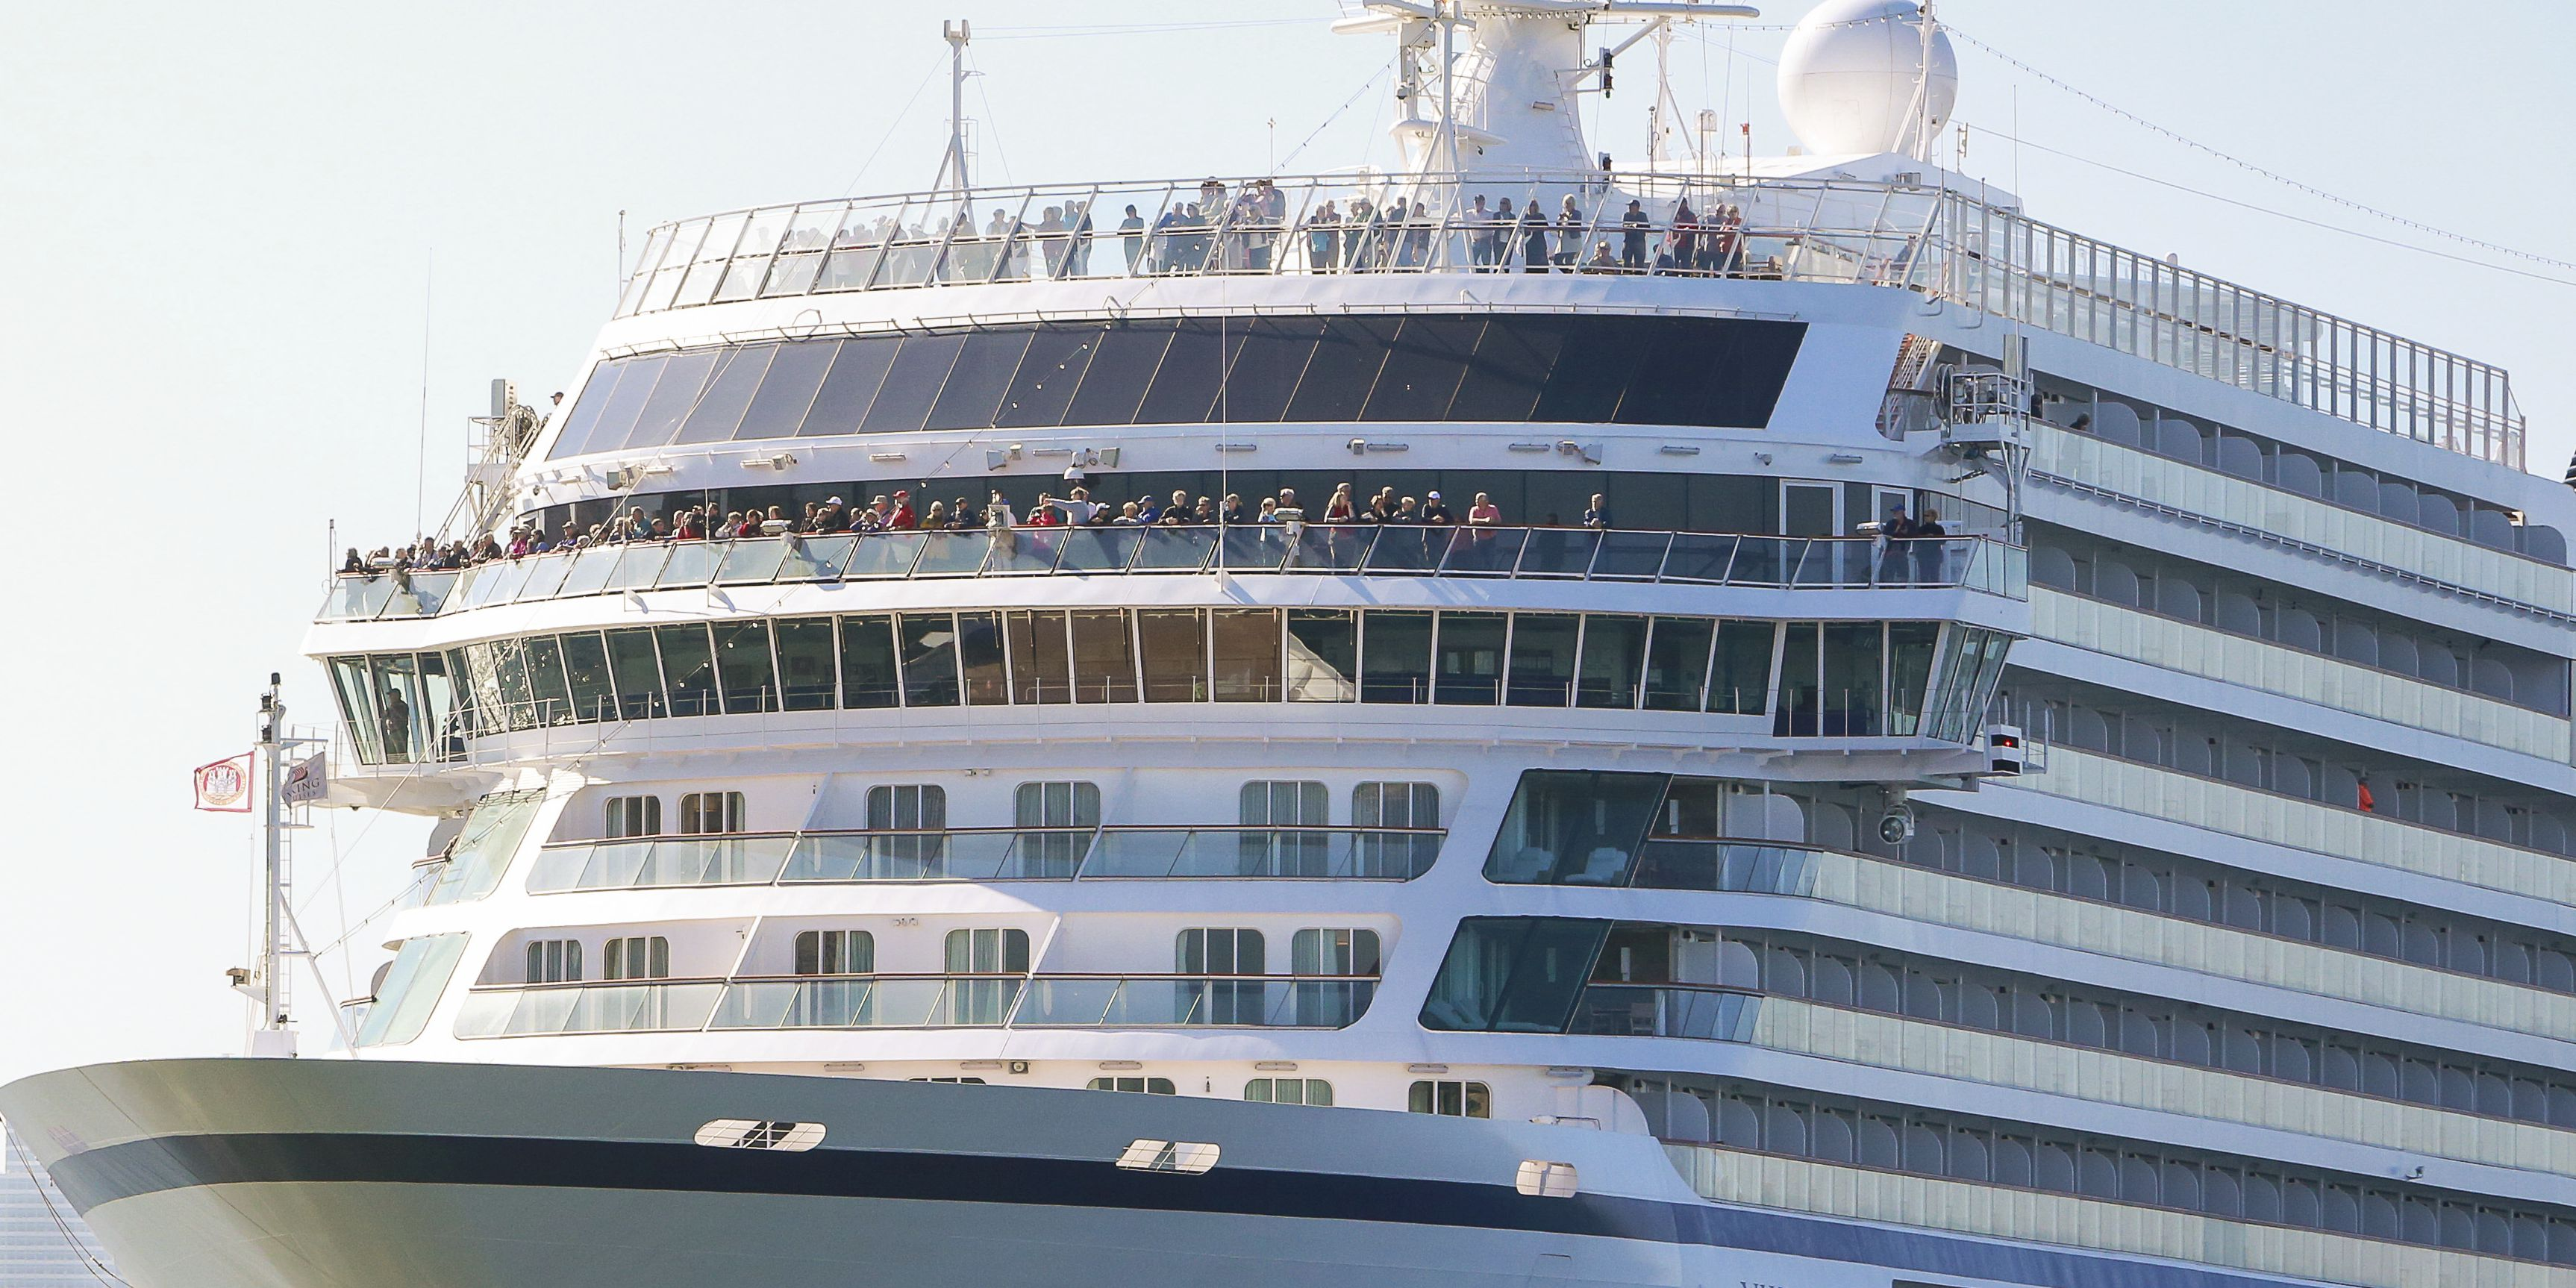 Wild helicopter rescues for 1,300 cruise ship passengers in Norway